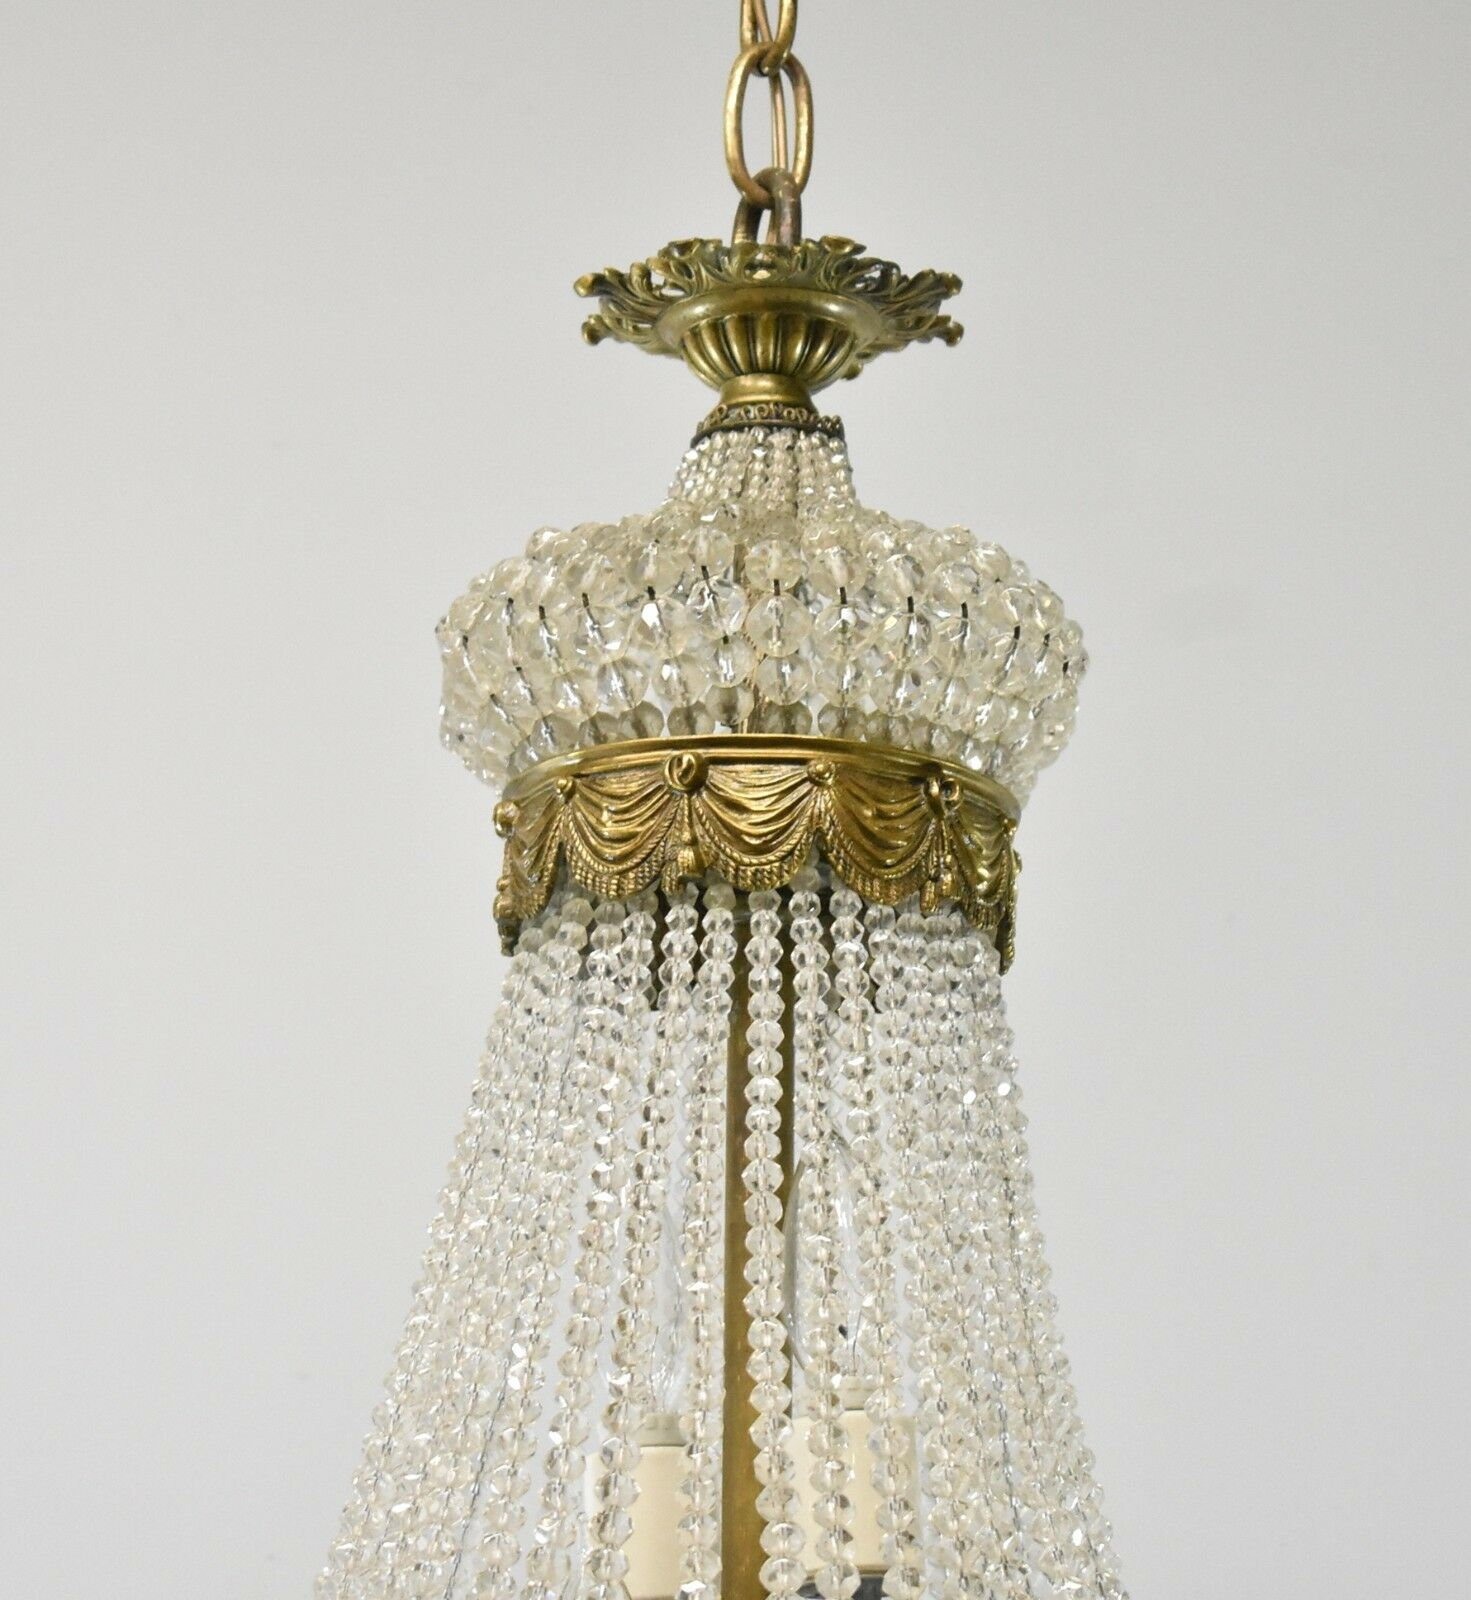 ... Antique-French-Style-Crystal-Chandelier-Light-Fixture-with- ... - Antique French Style Crystal Chandelier Light Fixture With Bronze